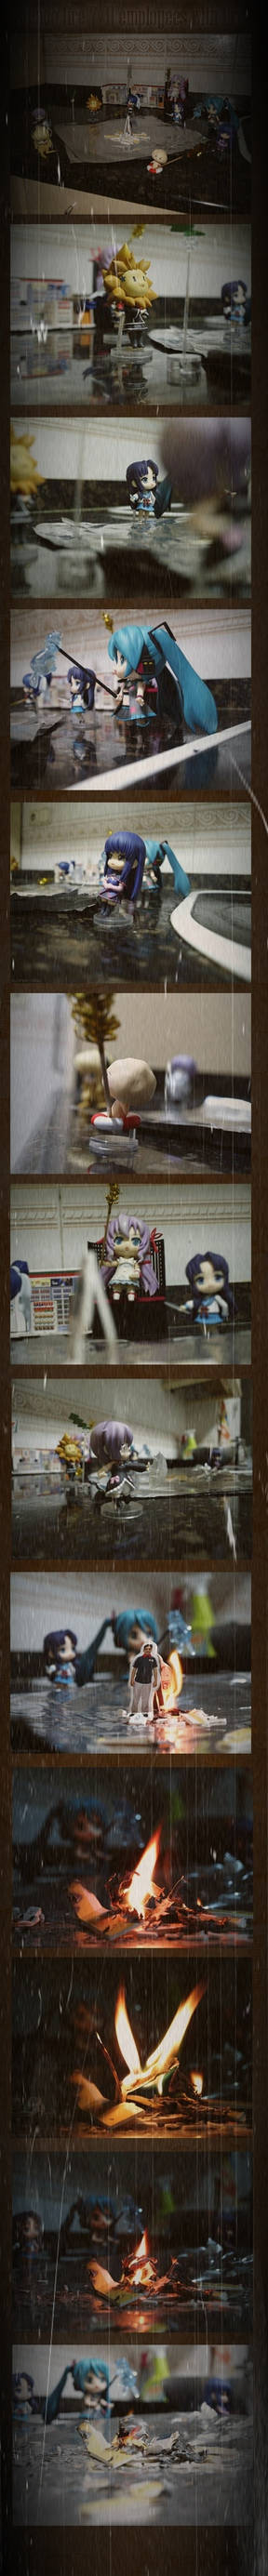 Nendos fire with fire